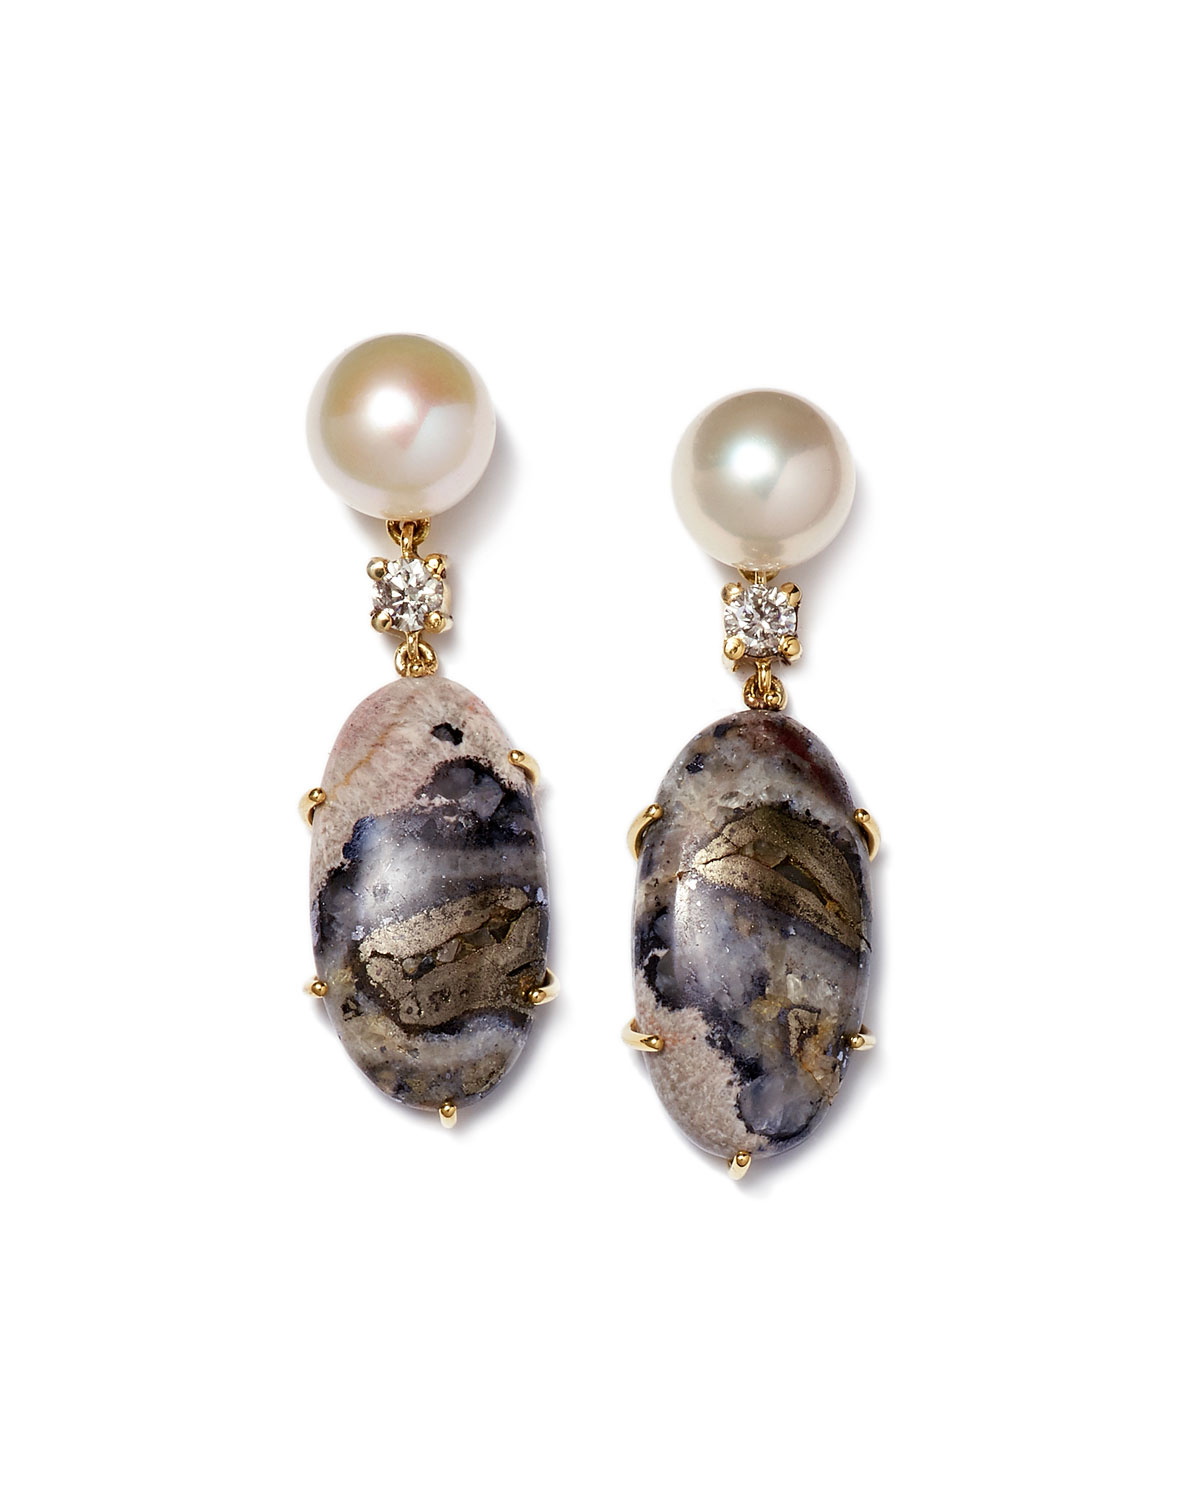 Jan Leslie 18K BESPOKE TRIBAL LUXURY 2-TIER EARRING WITH PEARL, CELESTROBARITE, AND DIAMOND